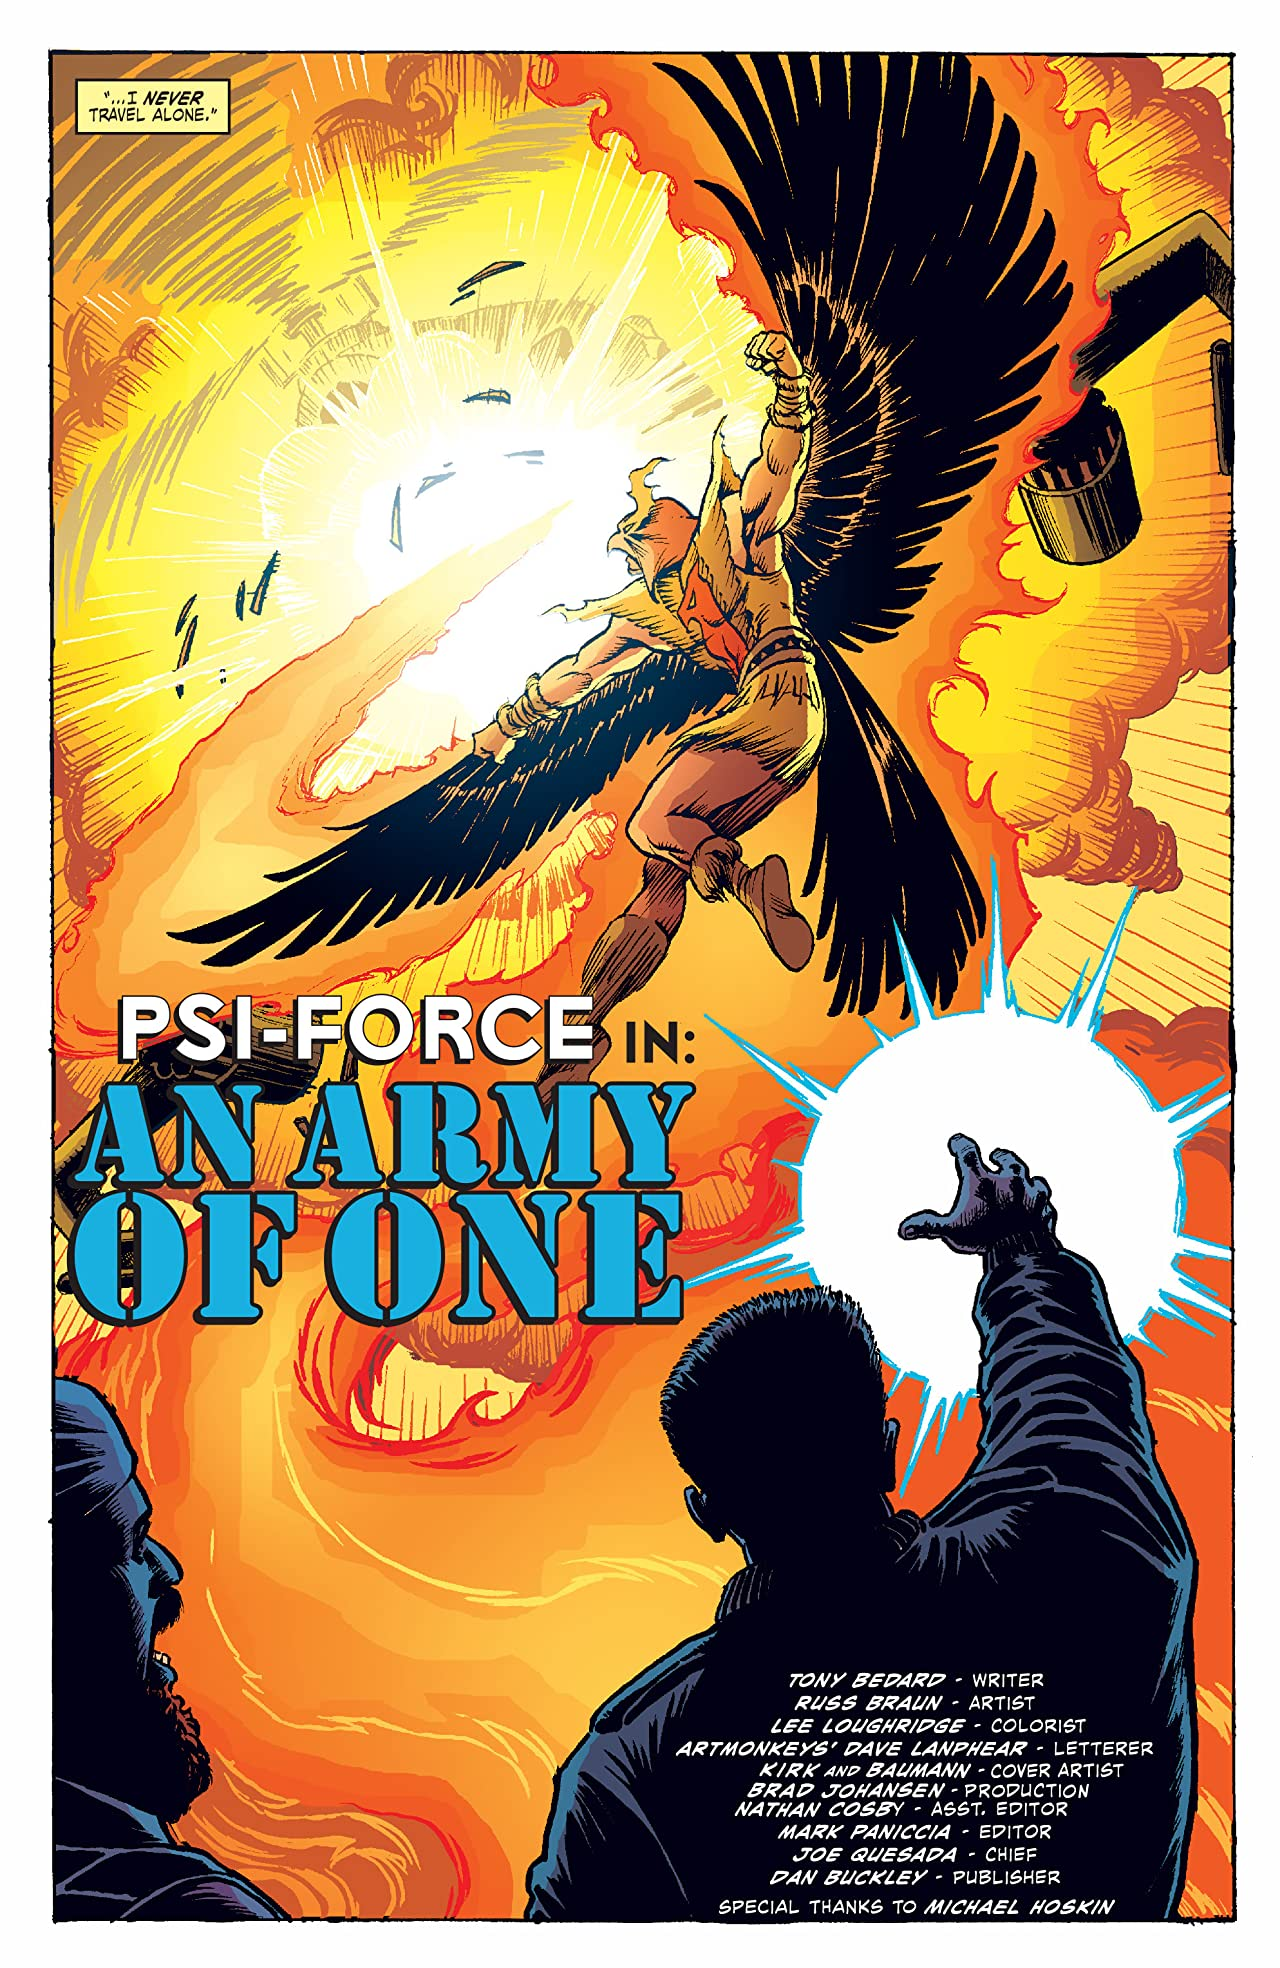 Untold Tales of the New Universe: Psi-Force (2006) #1